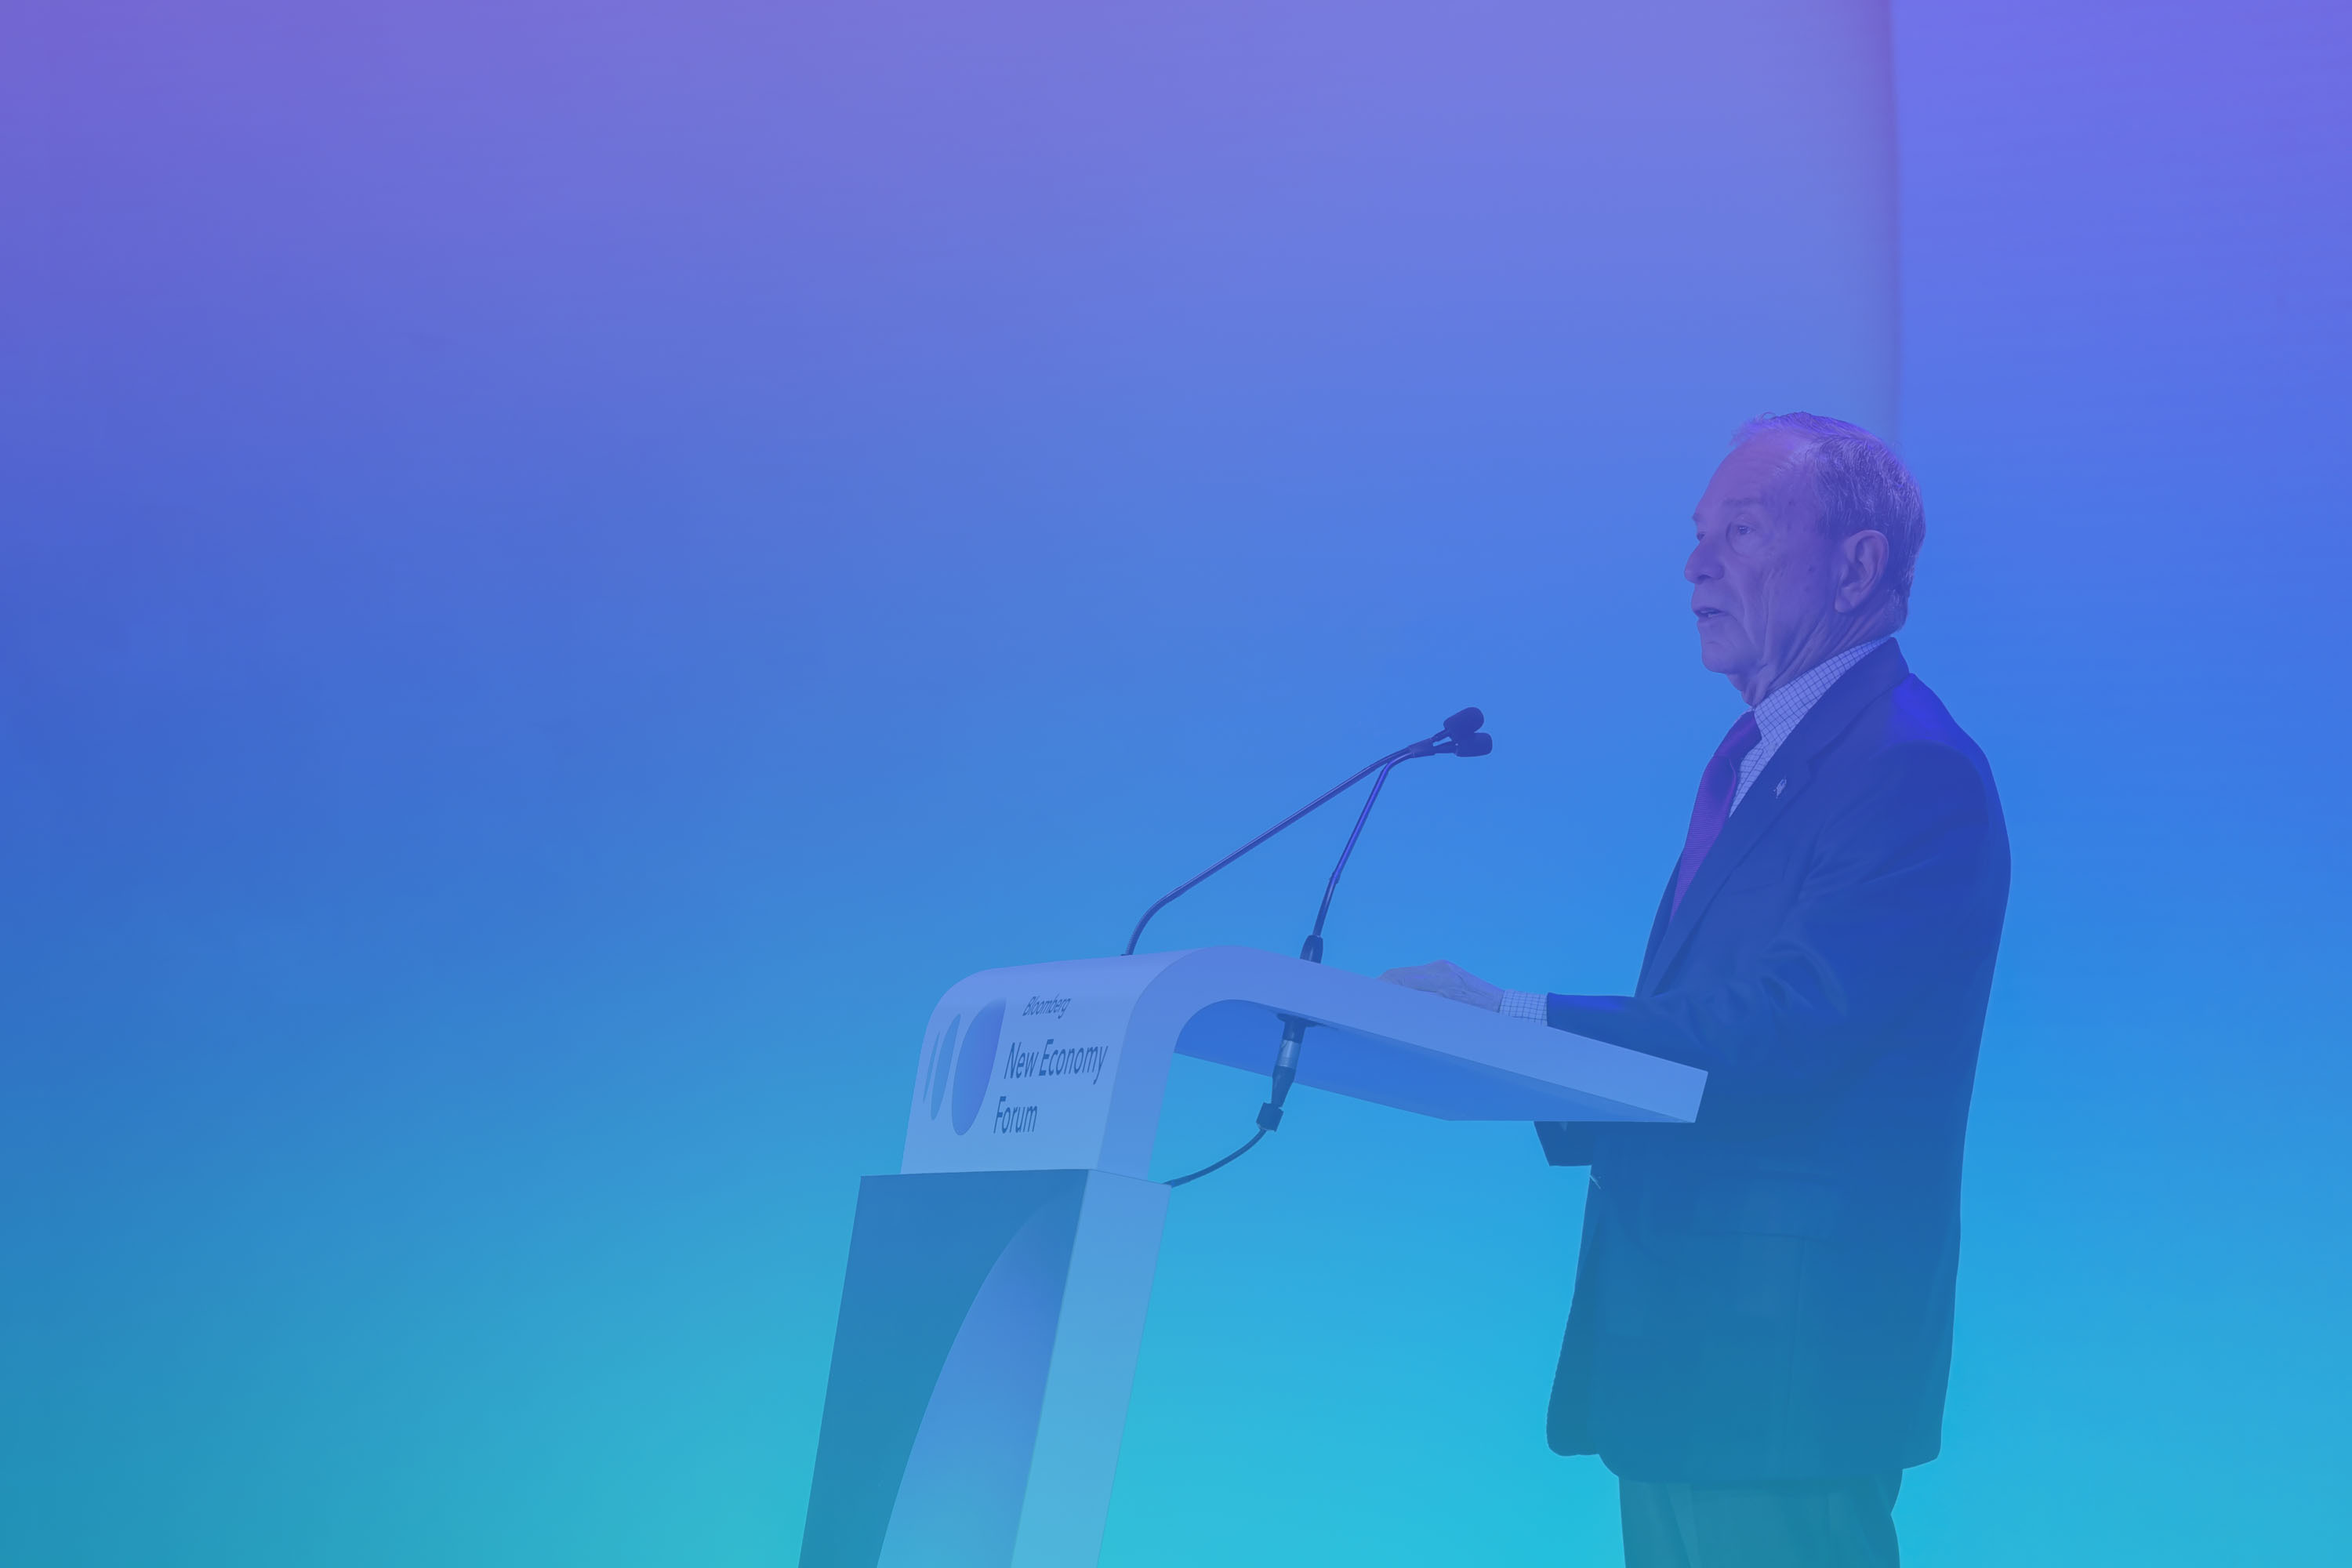 Michael R. Bloomberg to bring together public and private sectors for a constructive global dialogue